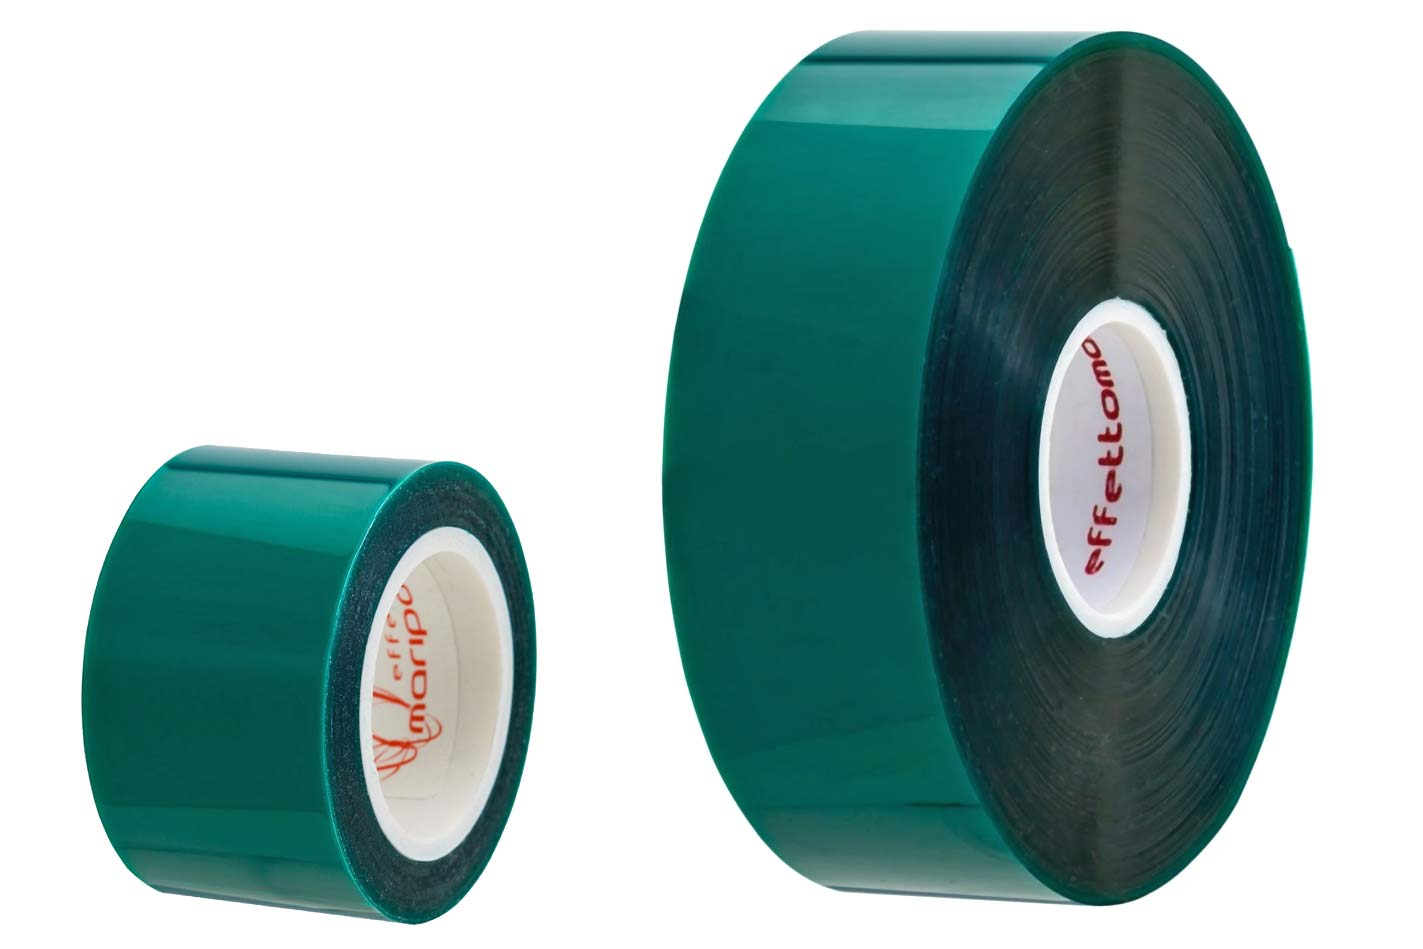 Effetto Mariposa Caffélatex Tubeless Tape in Plus sizes